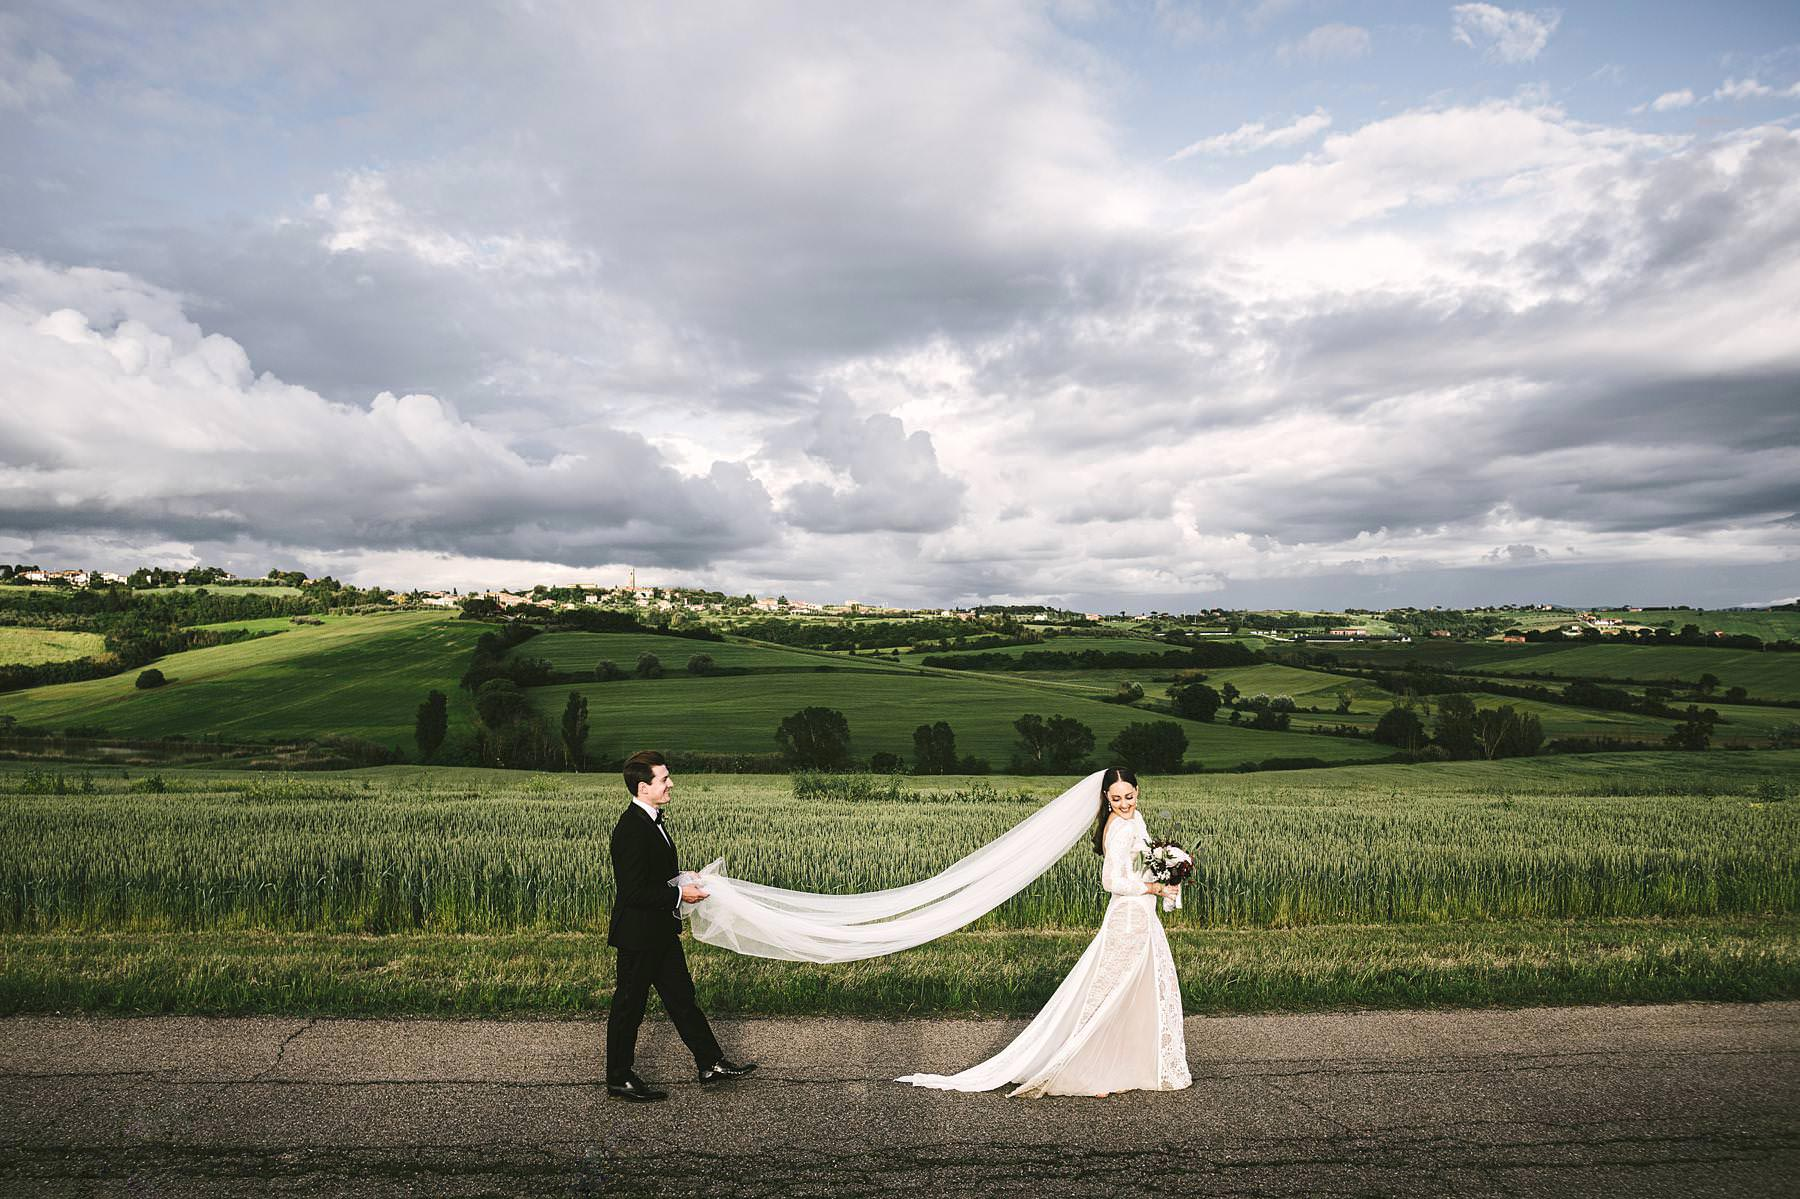 The amazing landscape of Umbria near the historic venue of Villa l'Antica Posta. Exciting bride in Grace Loves Lace with groom in their intimate destination wedding